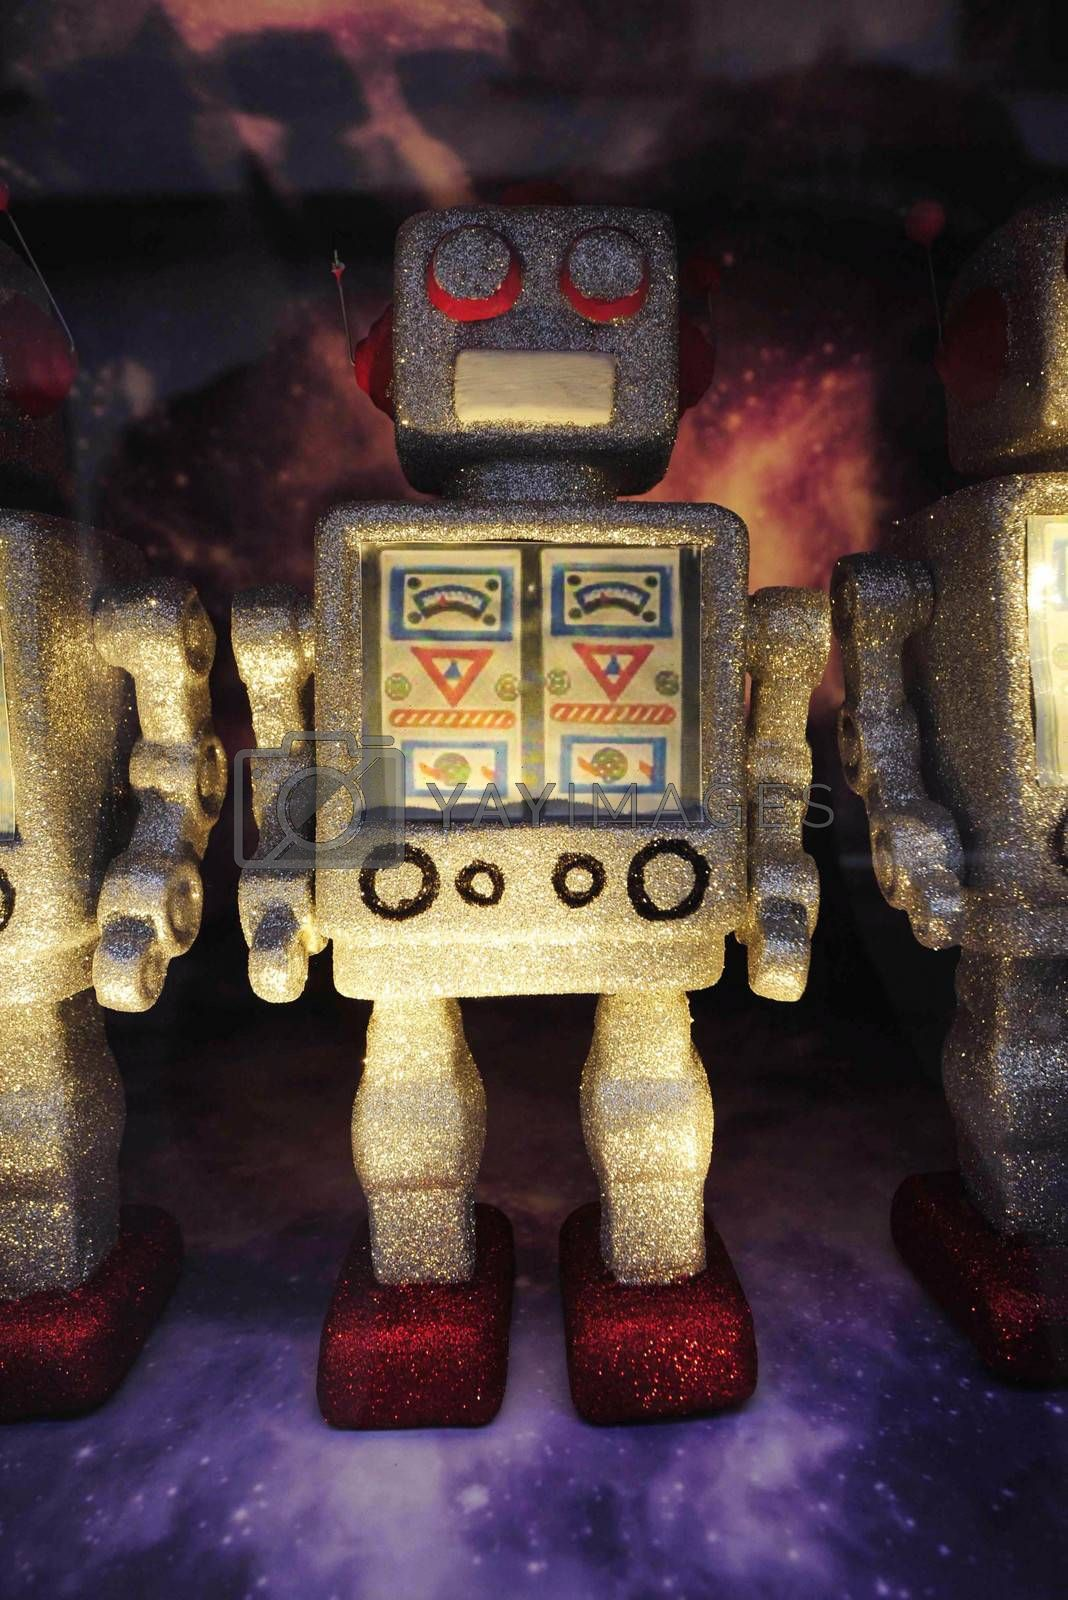 a robot toy figures standing on a dark space background